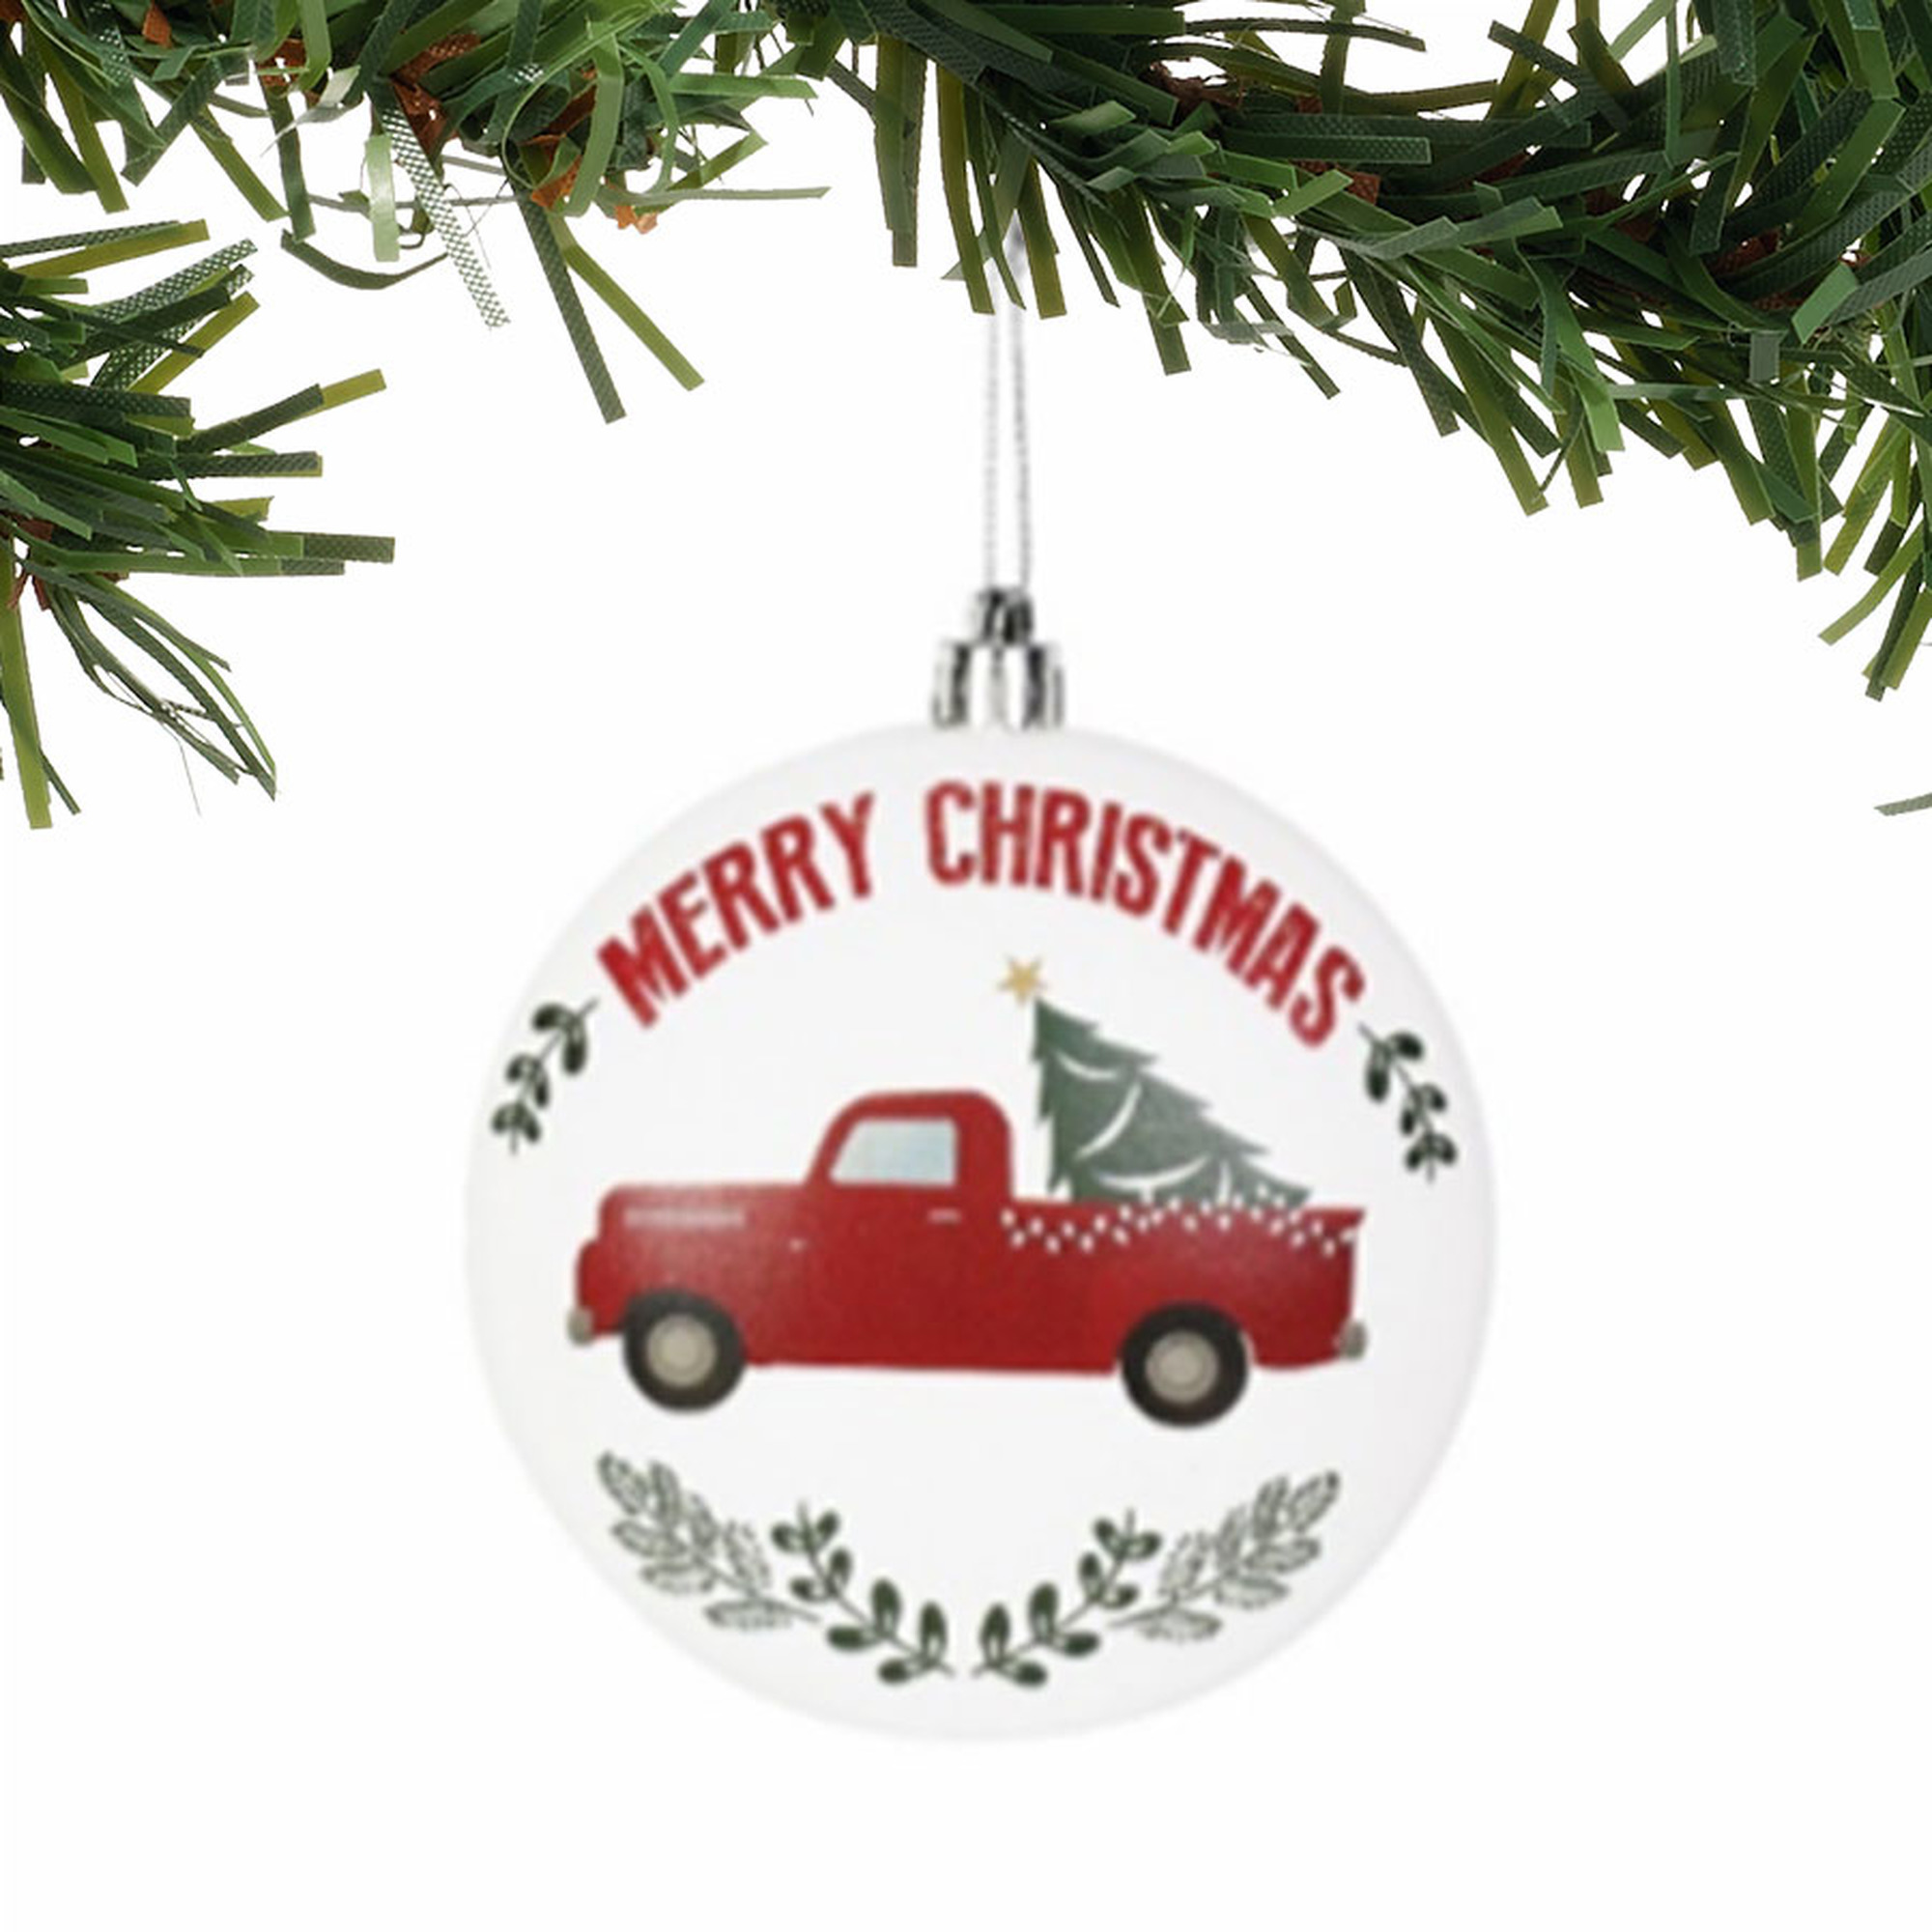 Merry Christmas Ornament by Old Fashioned Christmas